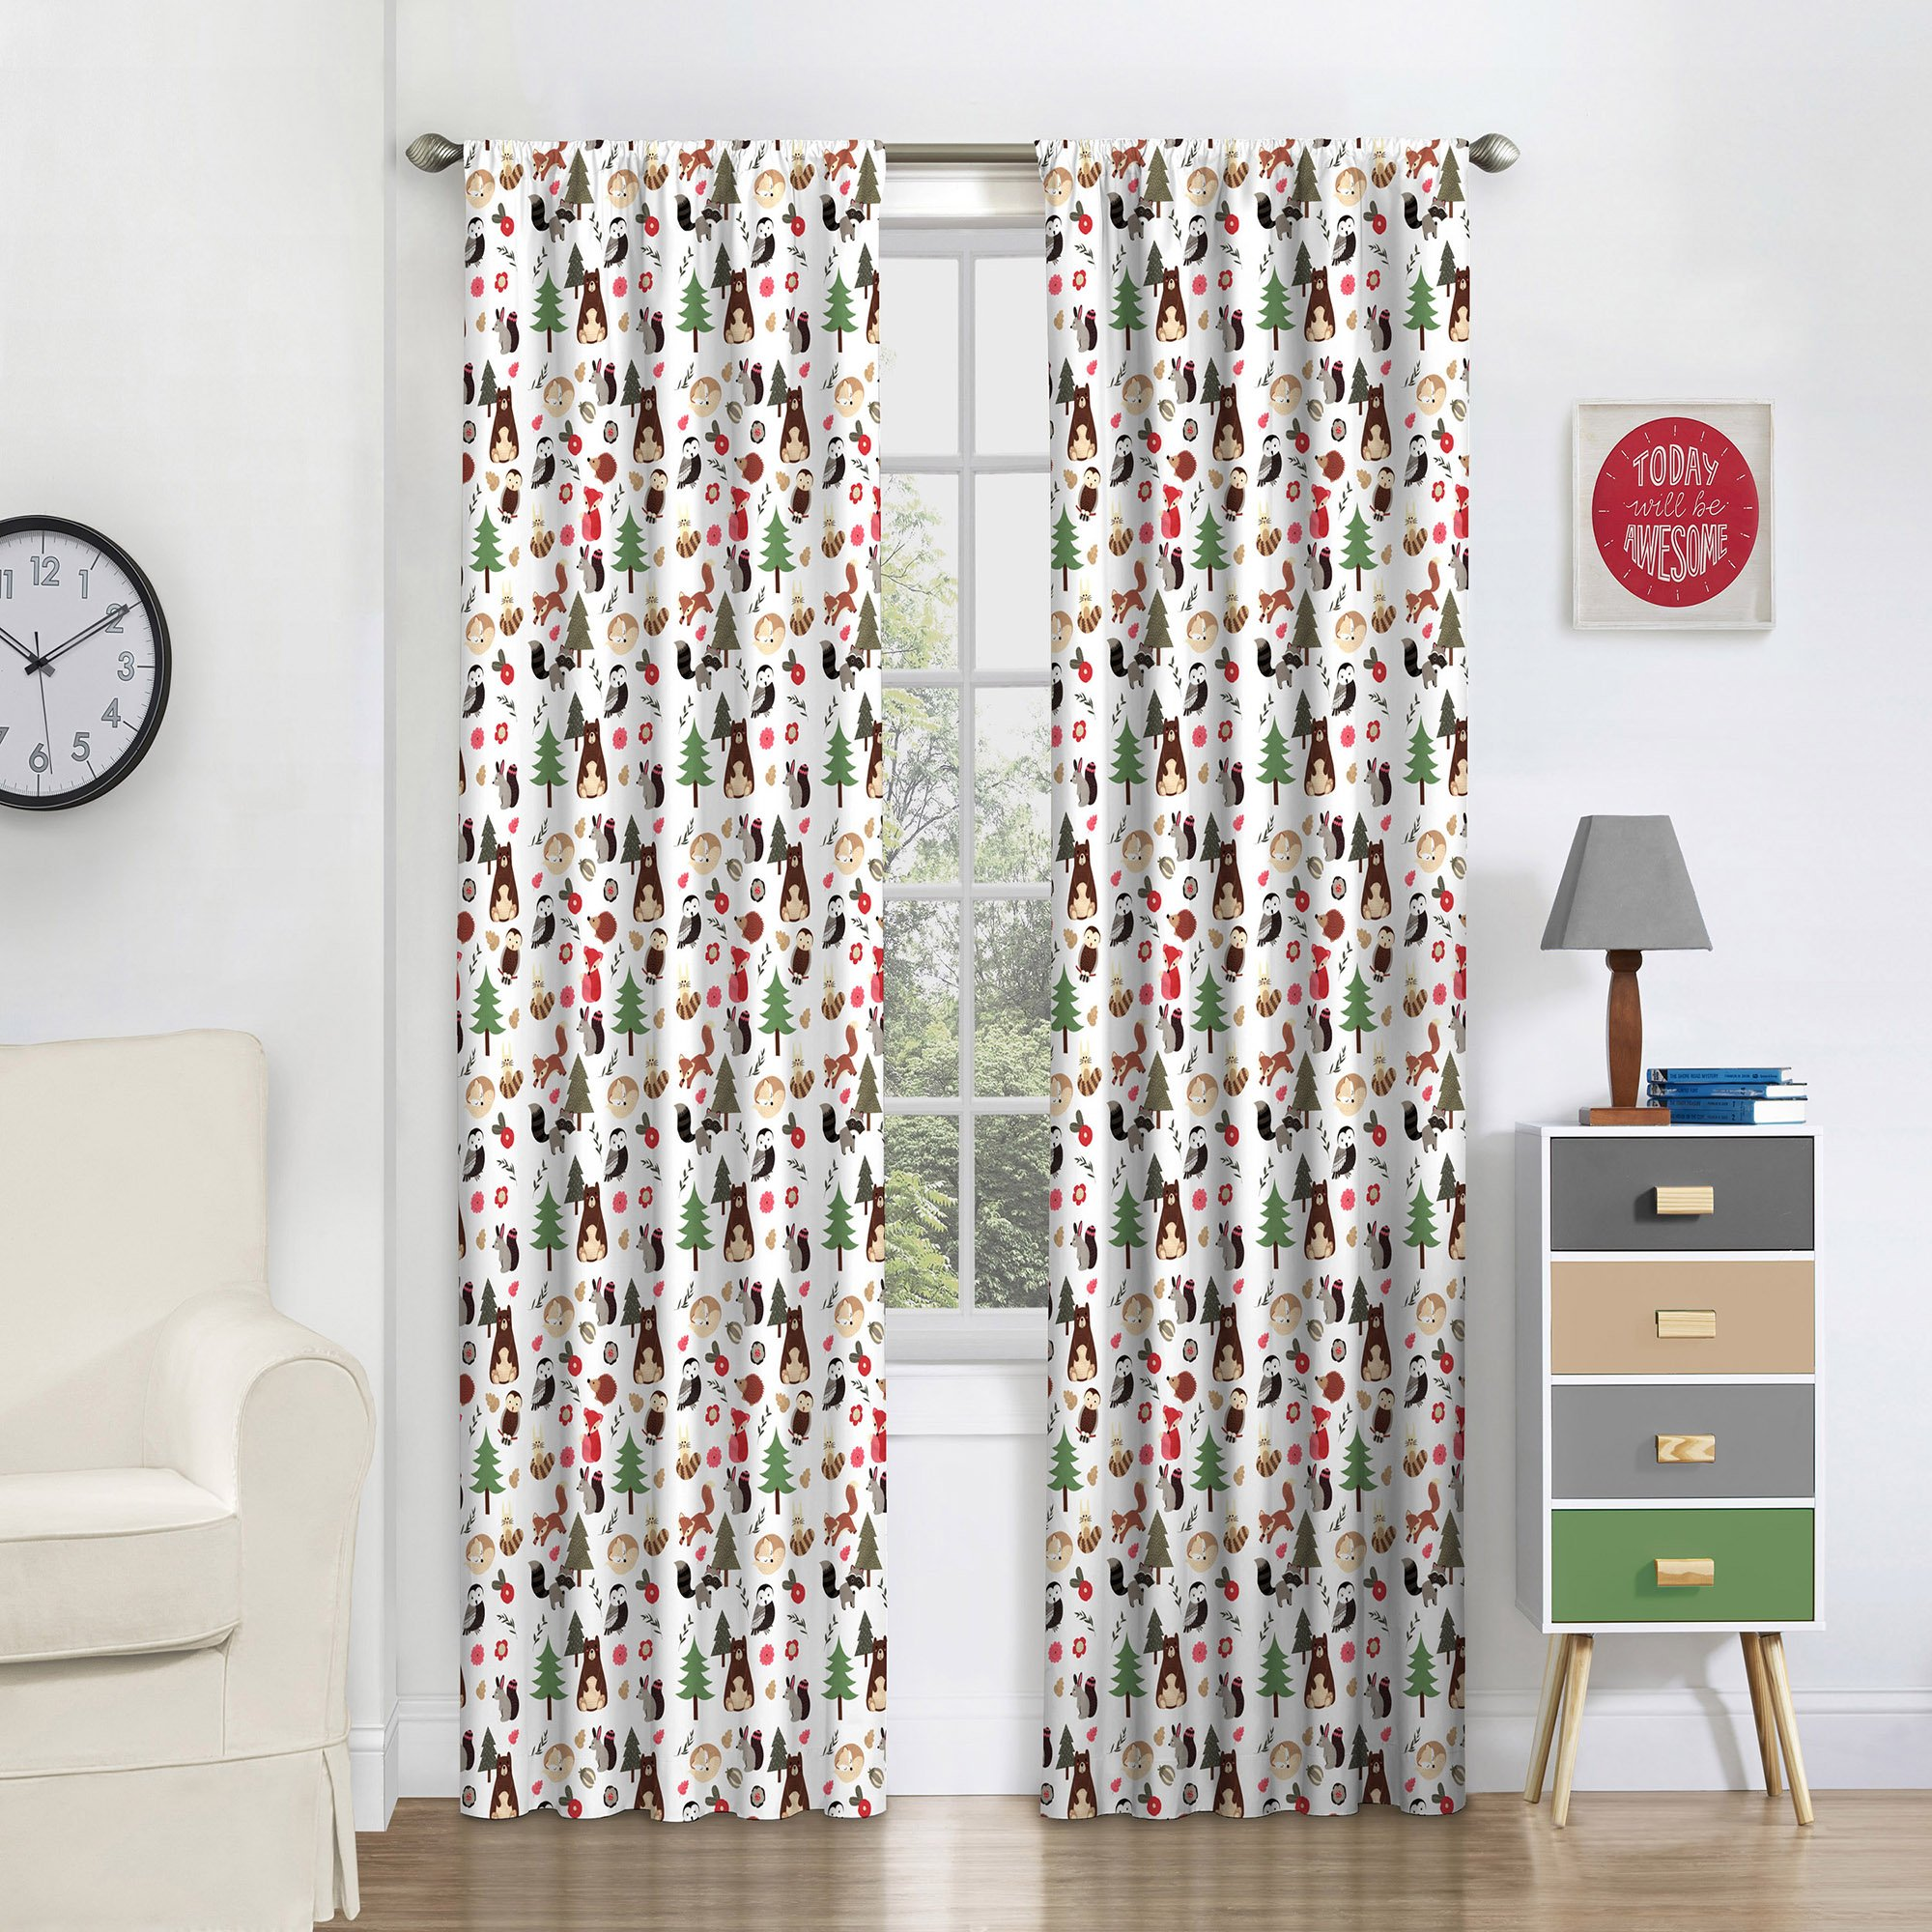 Eclipse 16460042X063MUL Forest Friends 42-Inch by 63-Inch Signle Window Curtain Panel, Multi